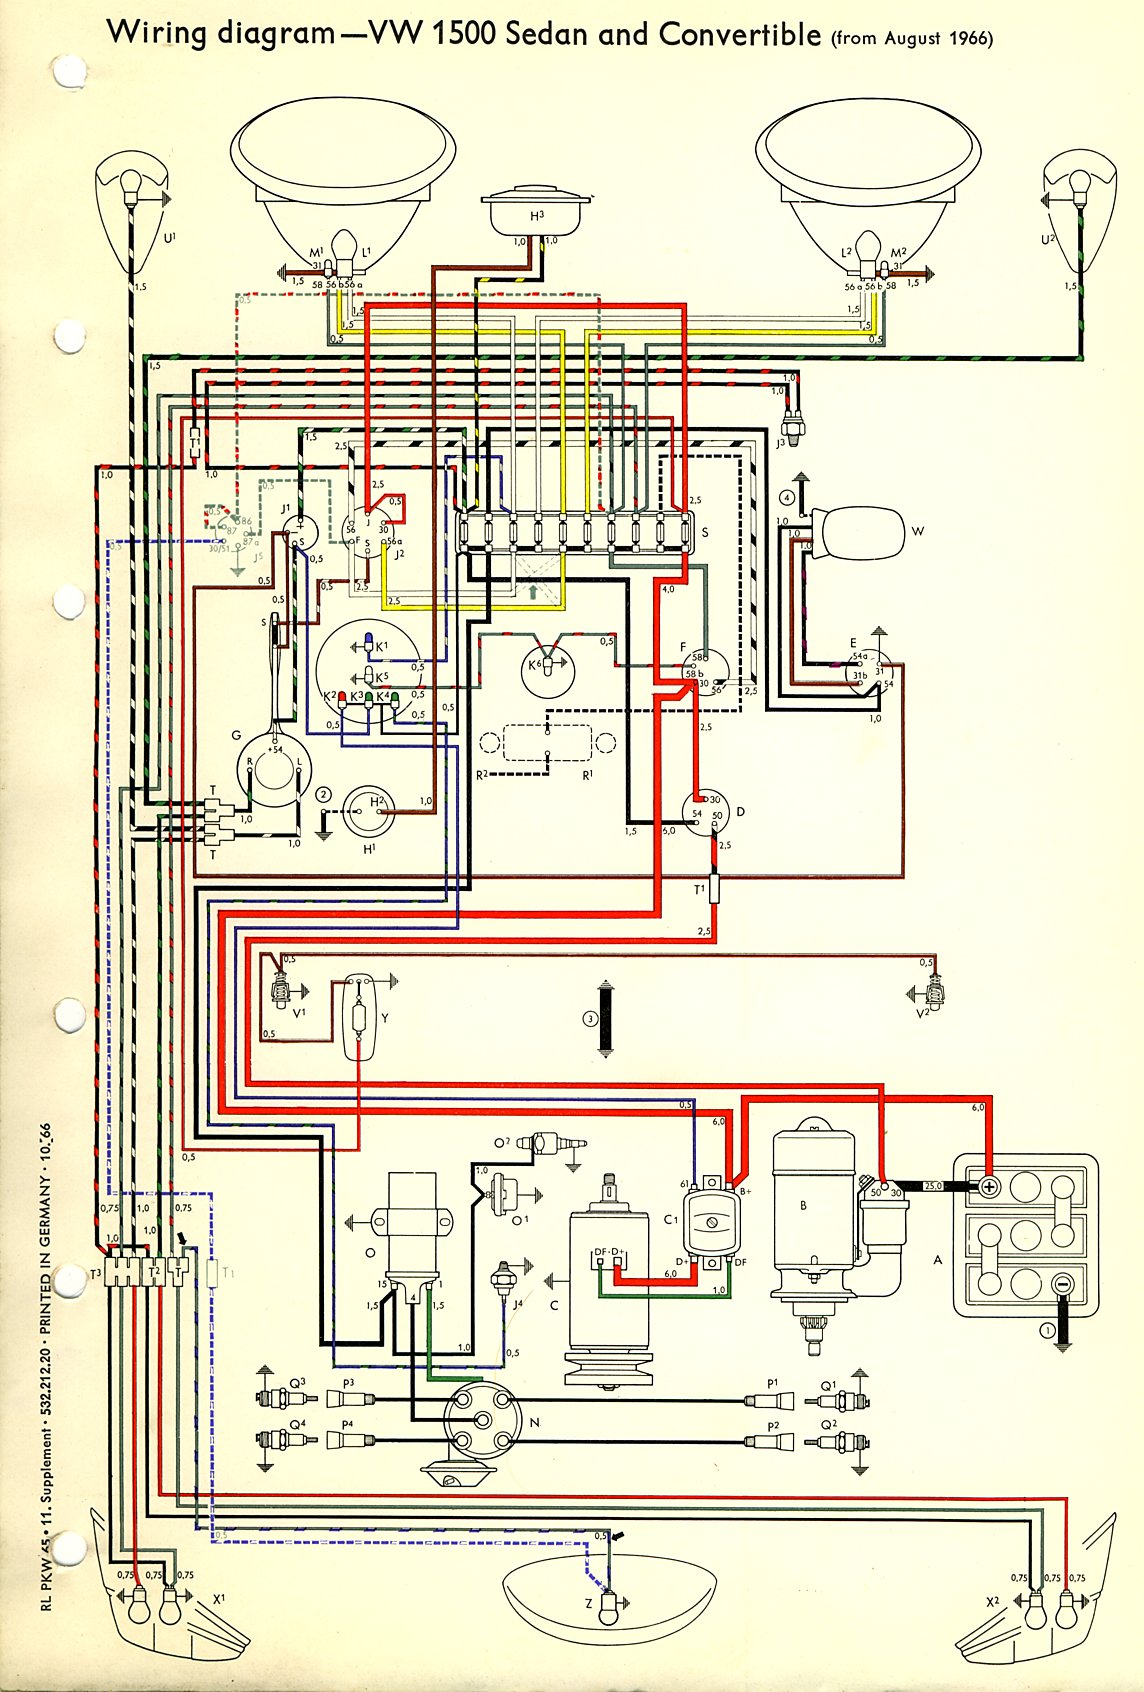 Bug Supplement besides Vwc as well Vw Org Ton F For Super Beetle additionally Bug further Vw Beetle Wiring Digram. on 1971 vw super beetle wiring diagram